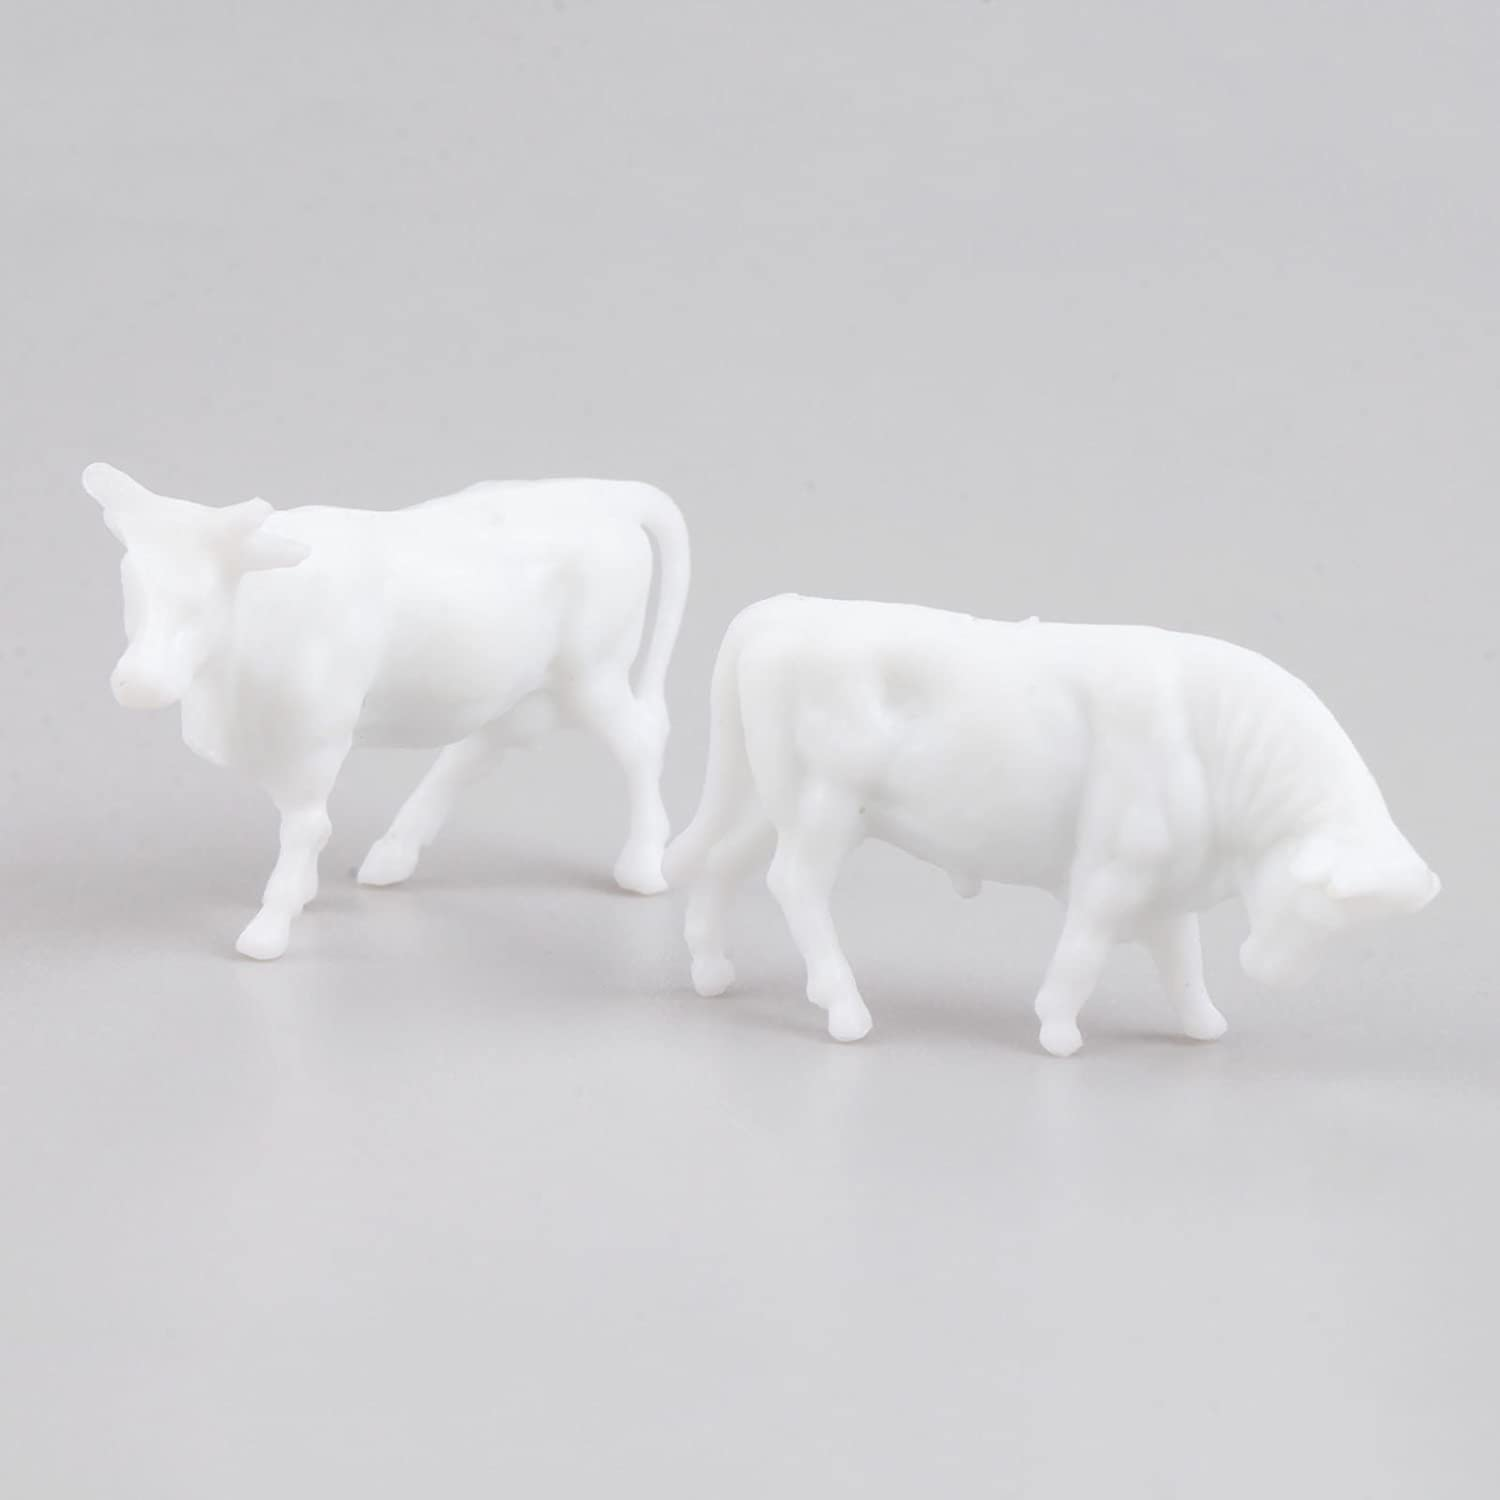 100pcs 1:87 UnPainted White Farm Animals Cows HO Scale Figure Plastic DIY Model Farm Animal Models Toy Set White Yetaha